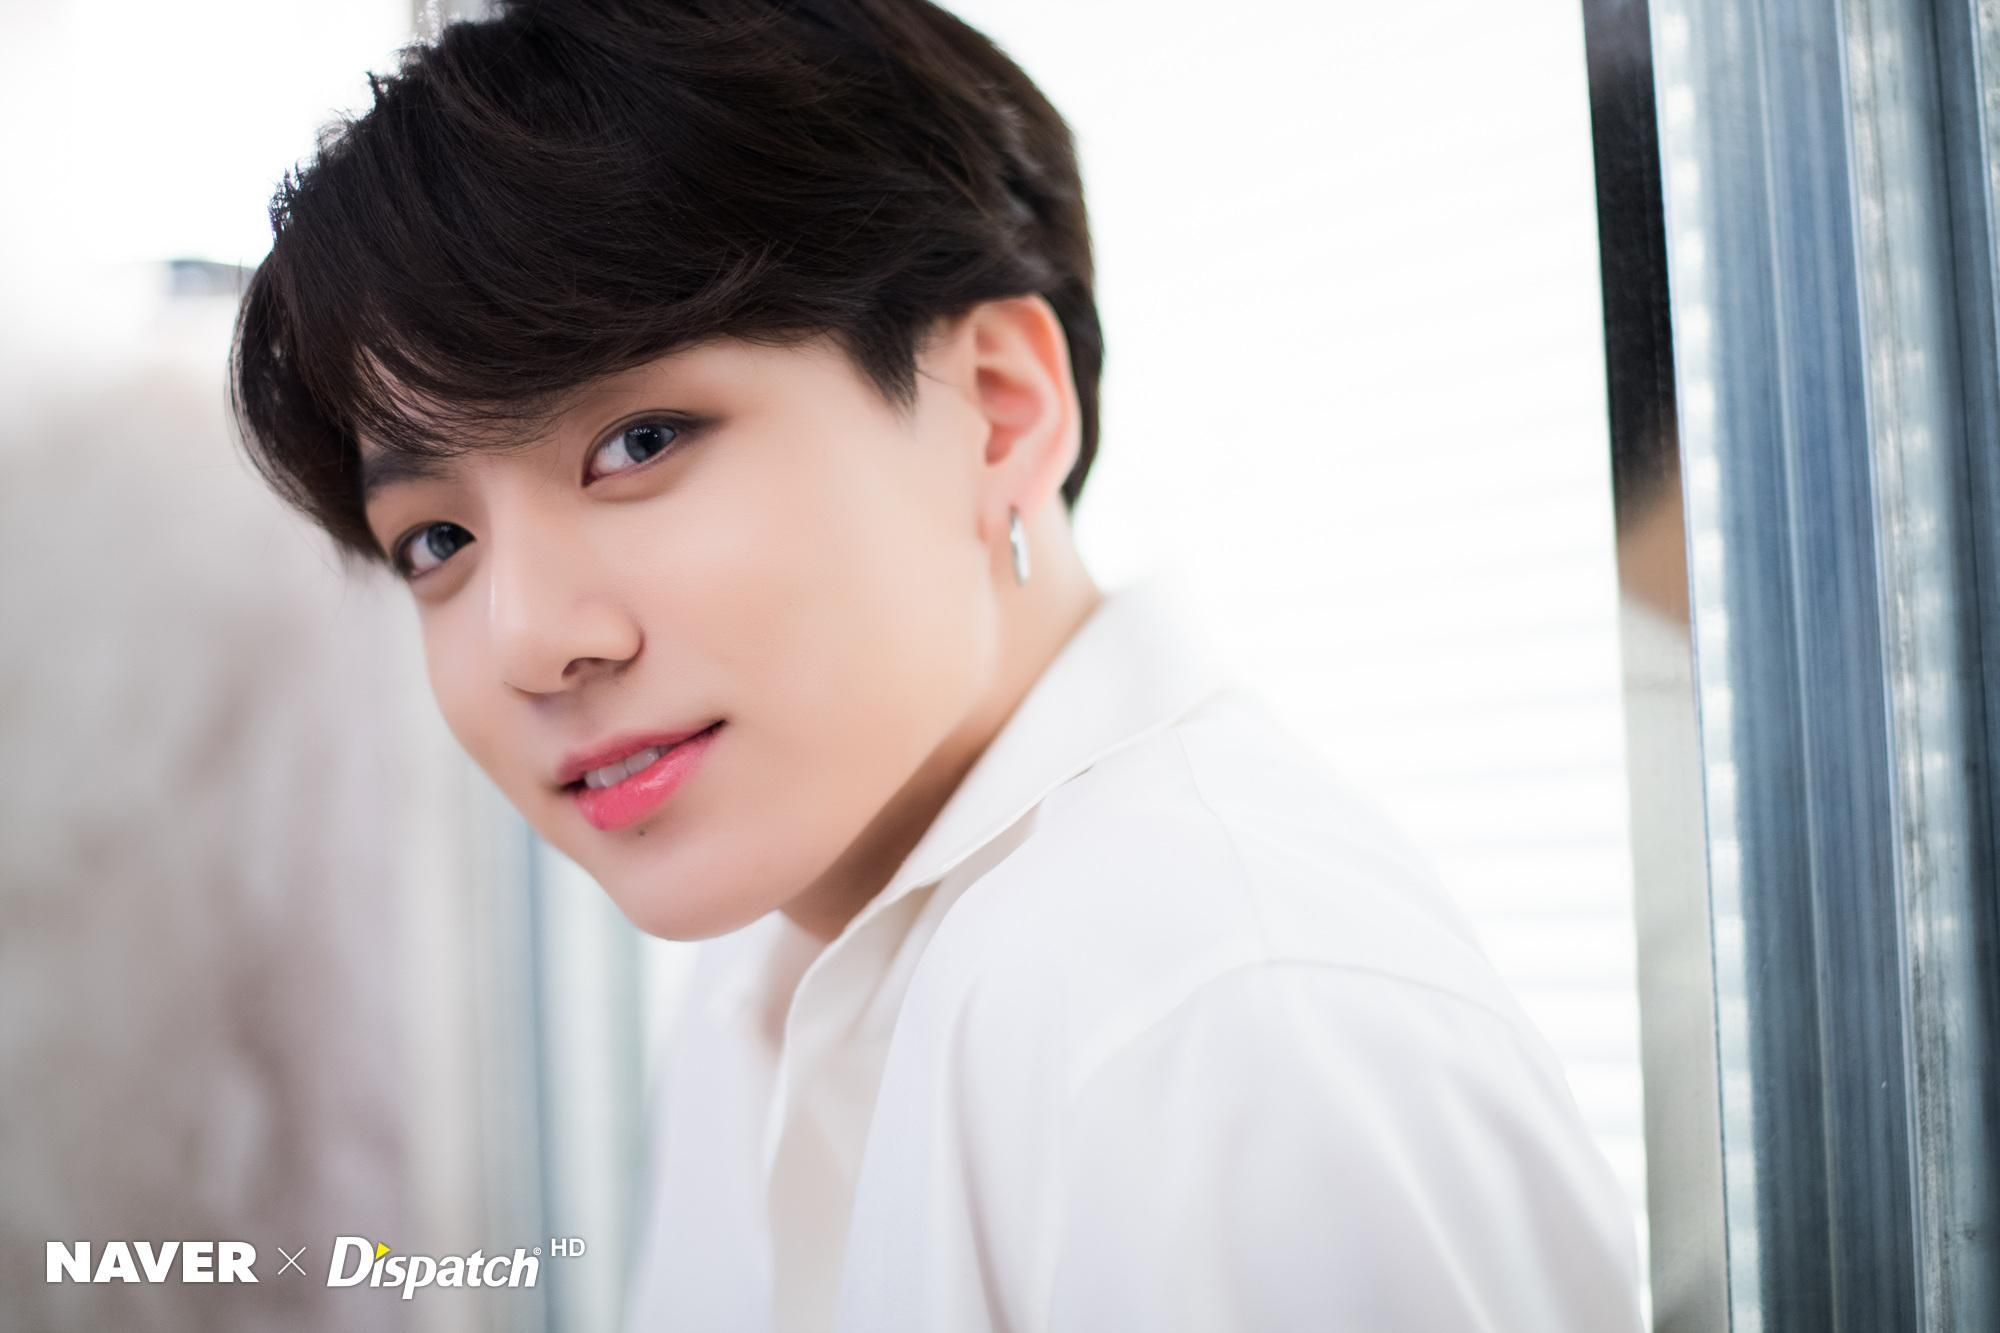 Dispatch X Naver Photoshoot Boy With Luv Jungkook Version Bts